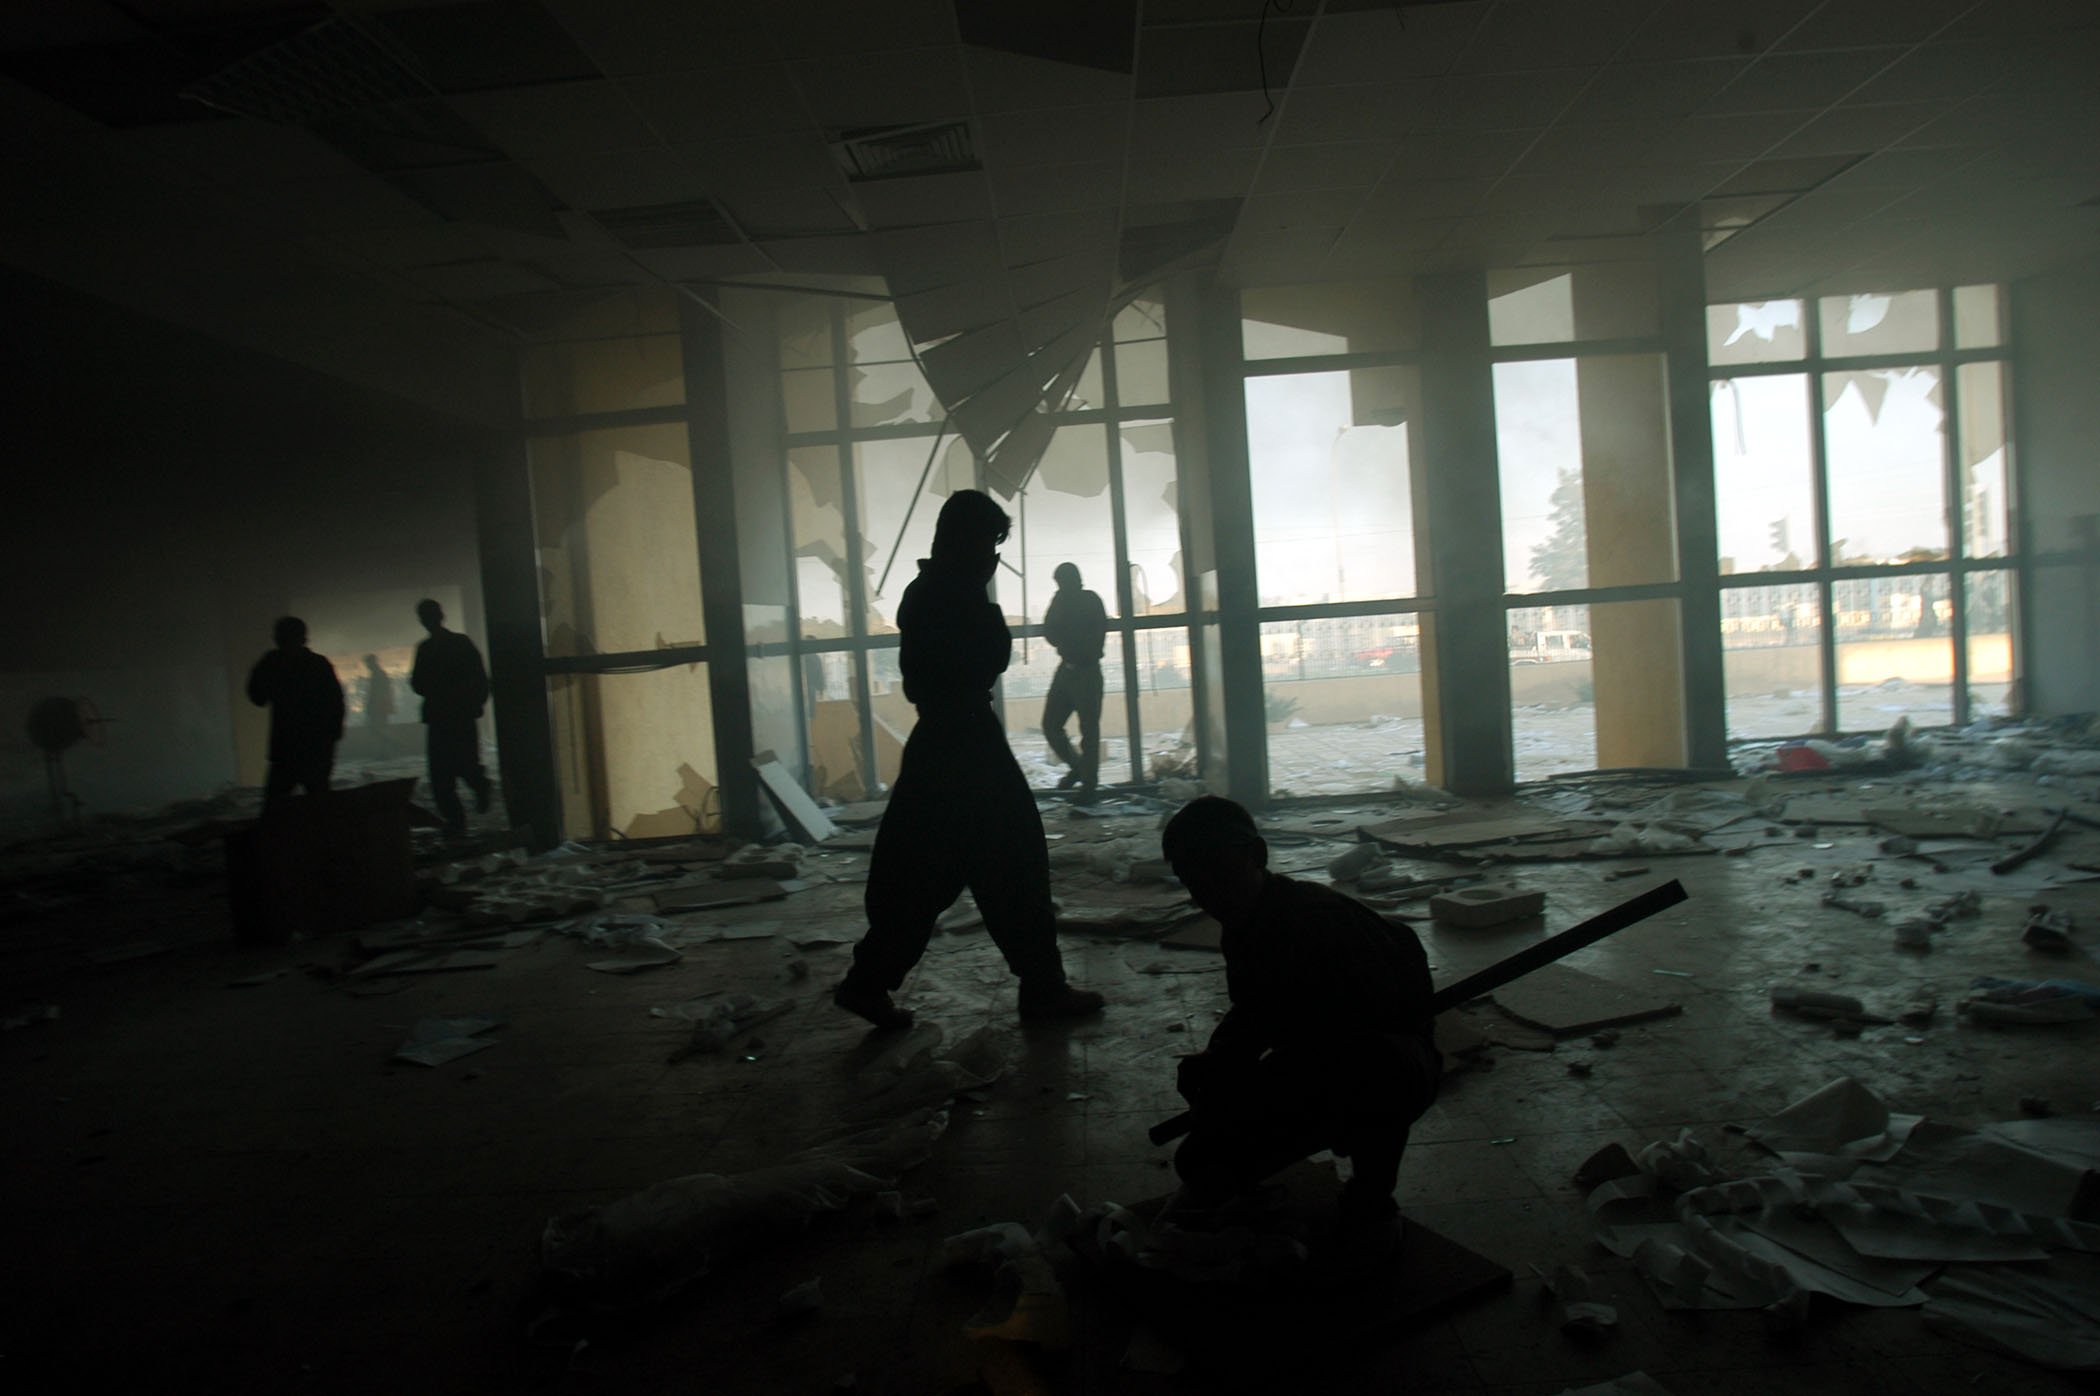 Iraqi Kurds loot merchandise from an abandoned supermarket in Kirkuk hours after it fell from Iraq Central Government rule, April 10, 2003.  Roughly twenty days after the start of the US-lead war on the regime of former Iraq leader Saddam Hussain, cities are falling out of his control, and locals celebrate and destroy statues and symbols of Hussains powerand Kurds from Norhtern Iraq have been looting abandoned homes, government buildings, and stores .